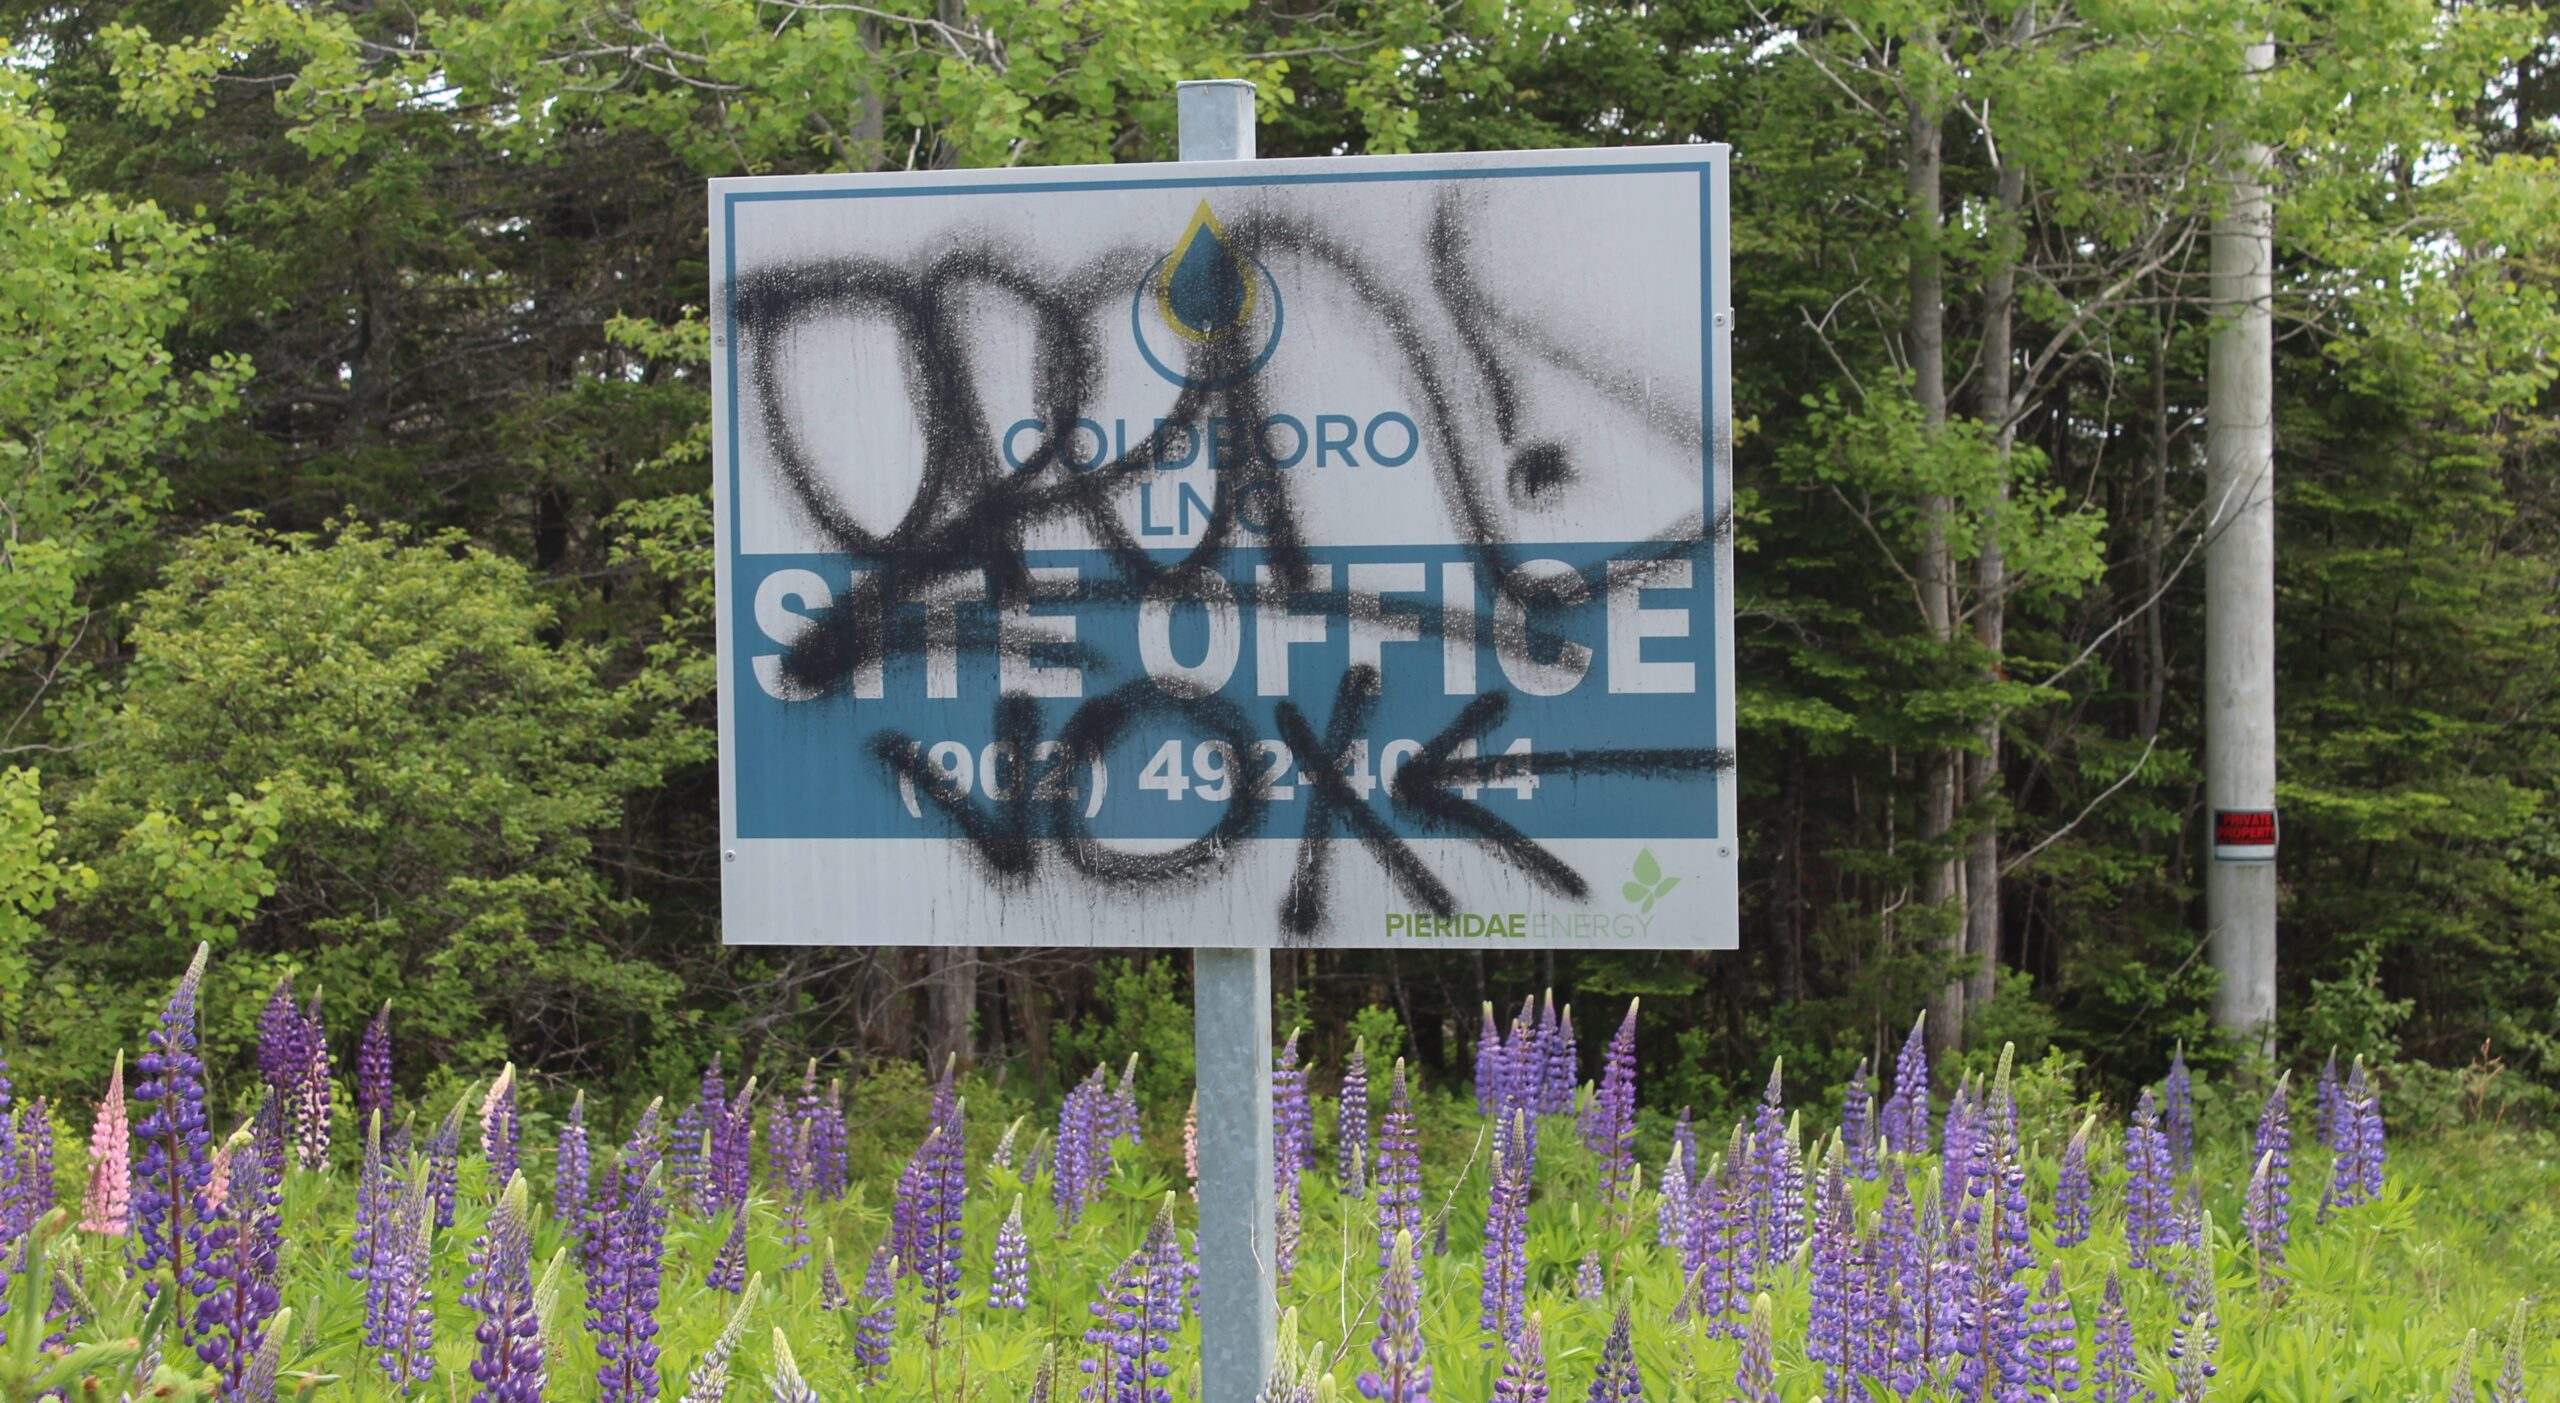 """A sign for the Goldboro site office, on which is spray painted graffiti in black. One word looks like a tag, the other is """"vox"""" with an arrow."""